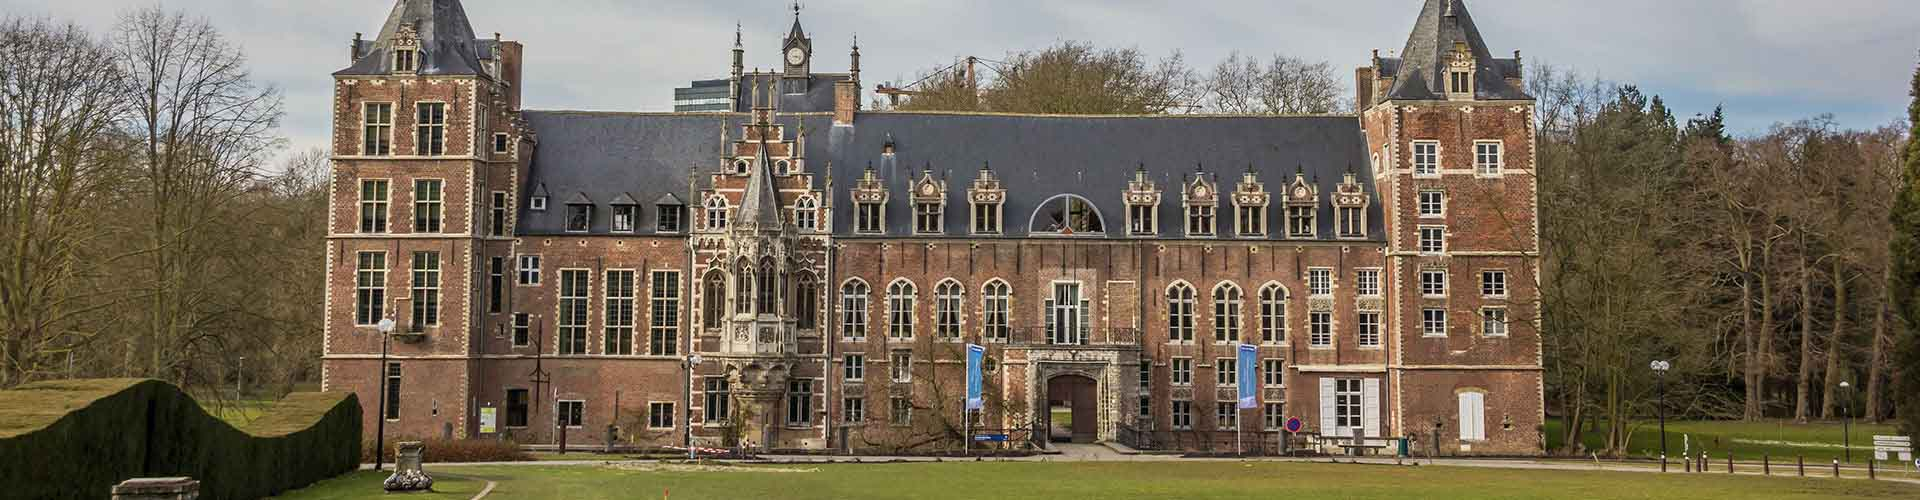 Leuven – Hostels in Leuven. Maps of Leuven, Photos and Reviews for each hostel in Leuven.